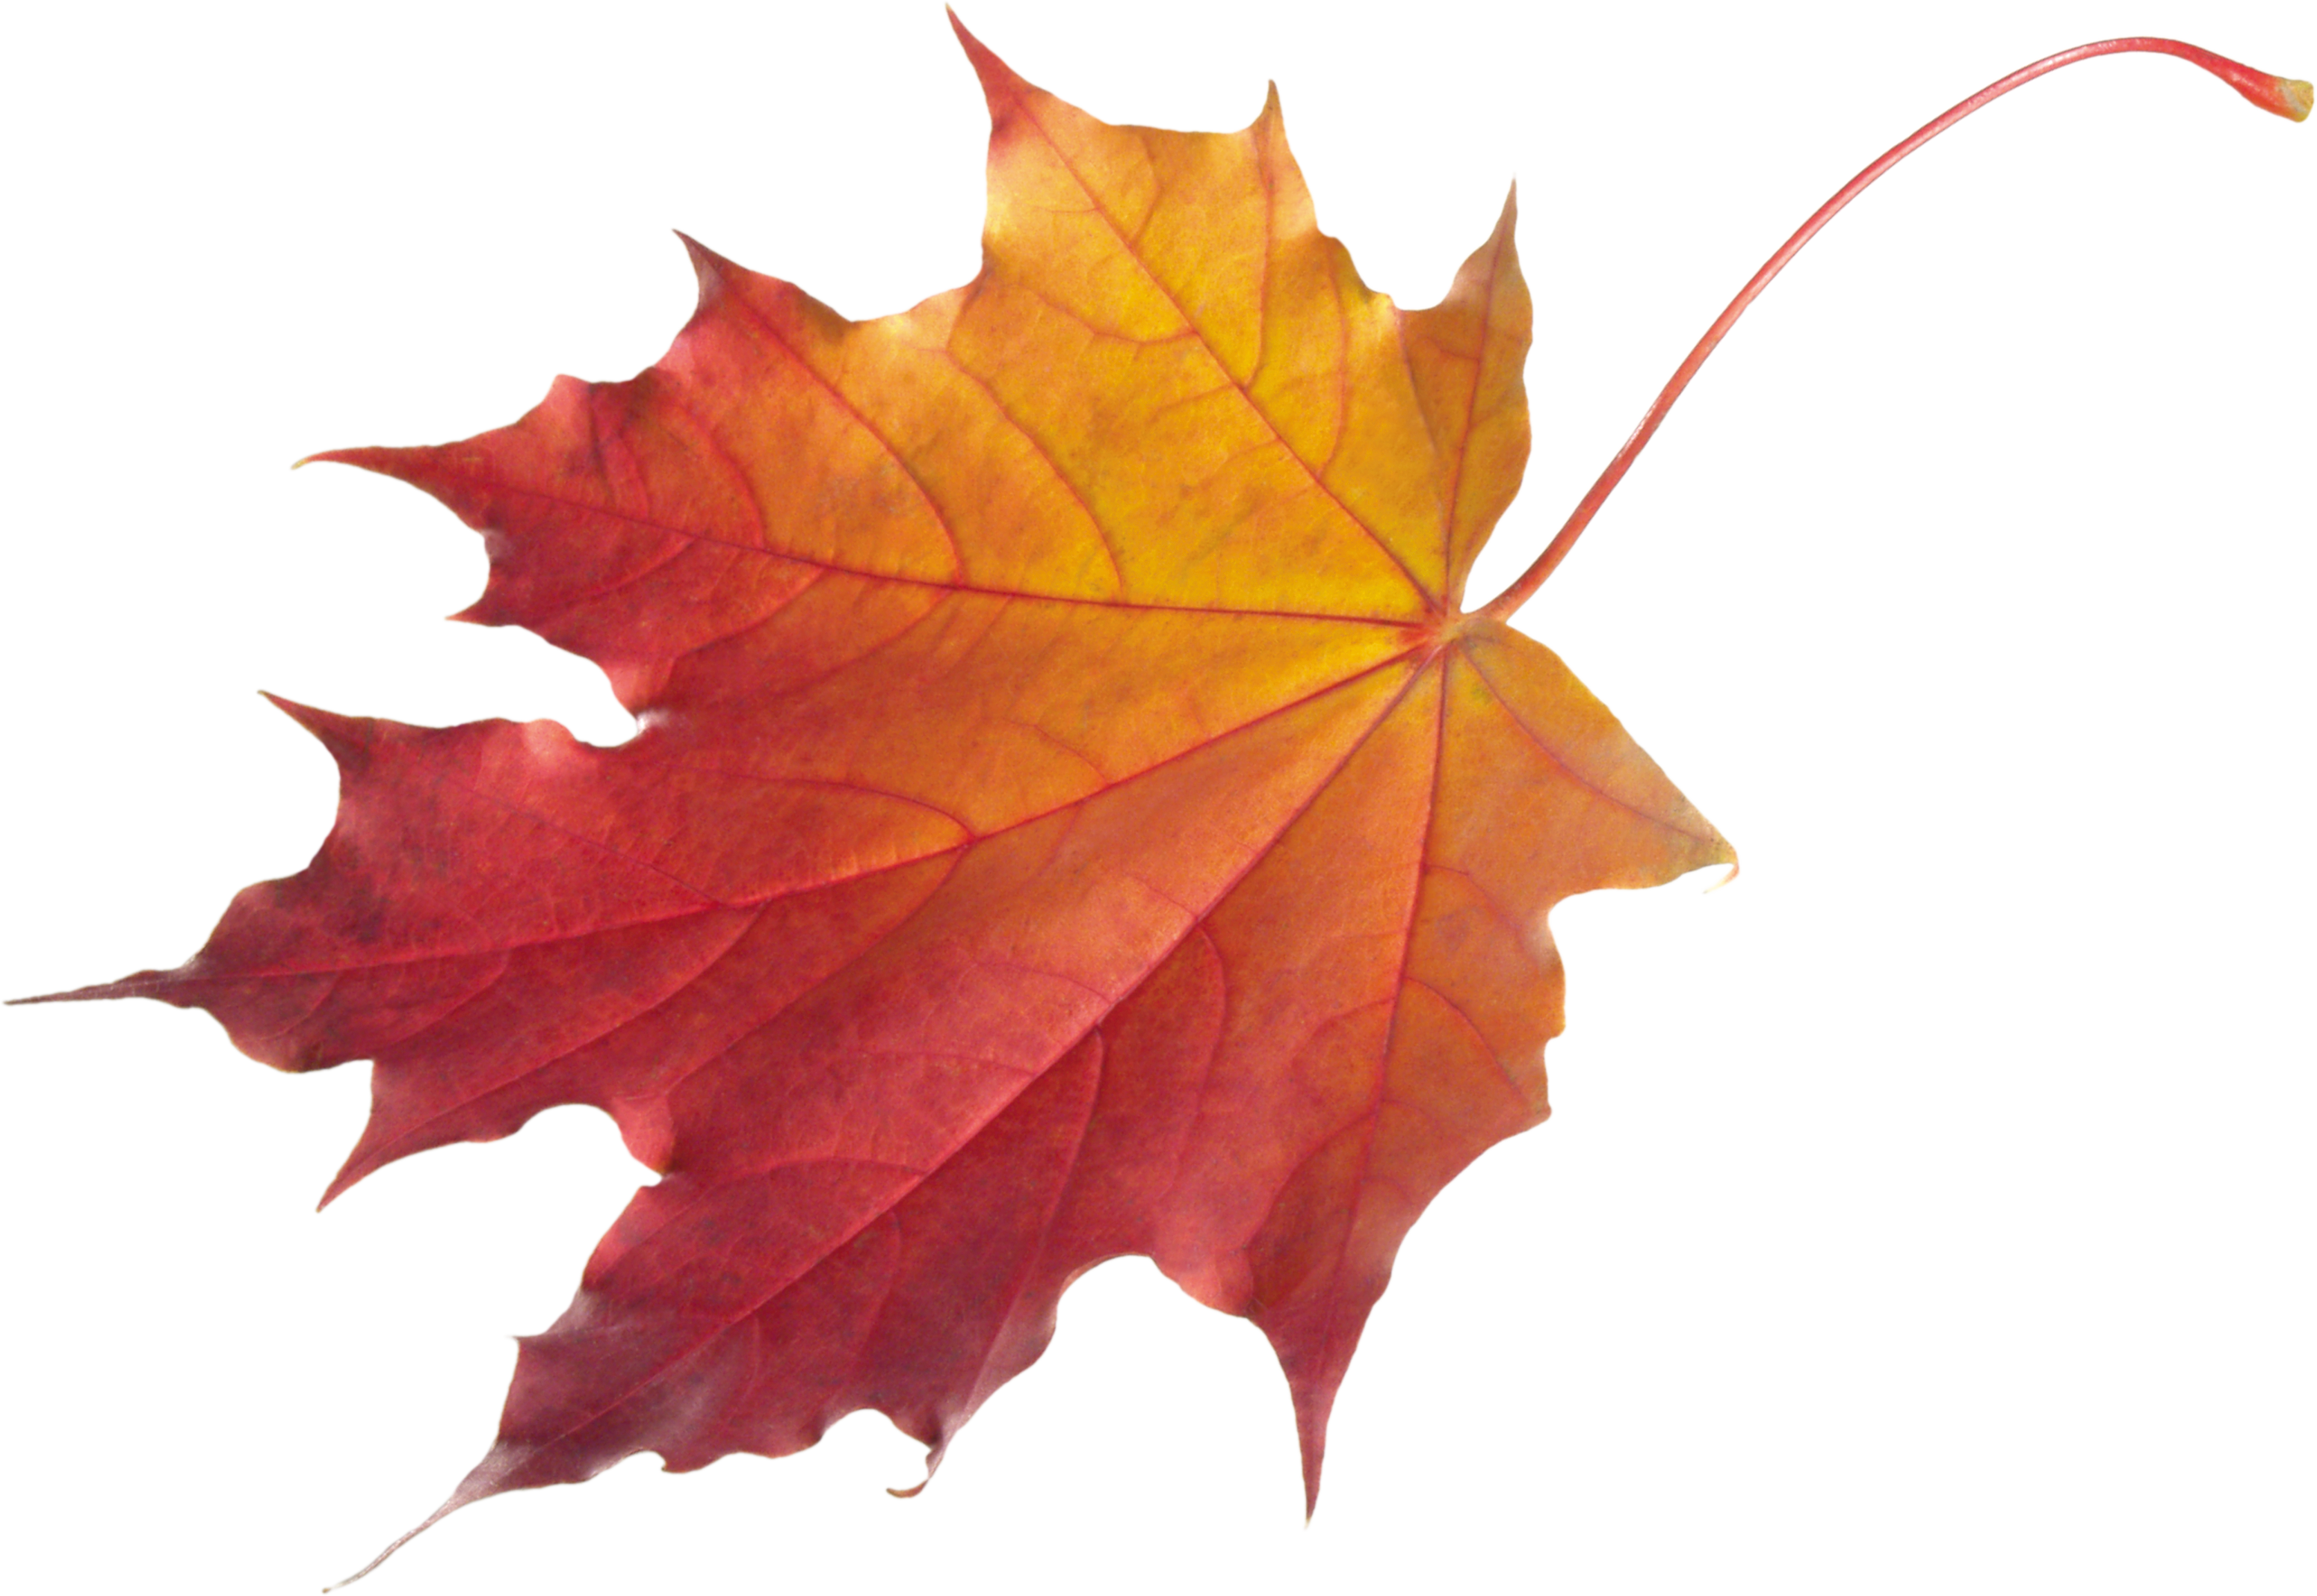 Autumn Leaves HD PNG Transparent Autumn Leaves HD.PNG Images.